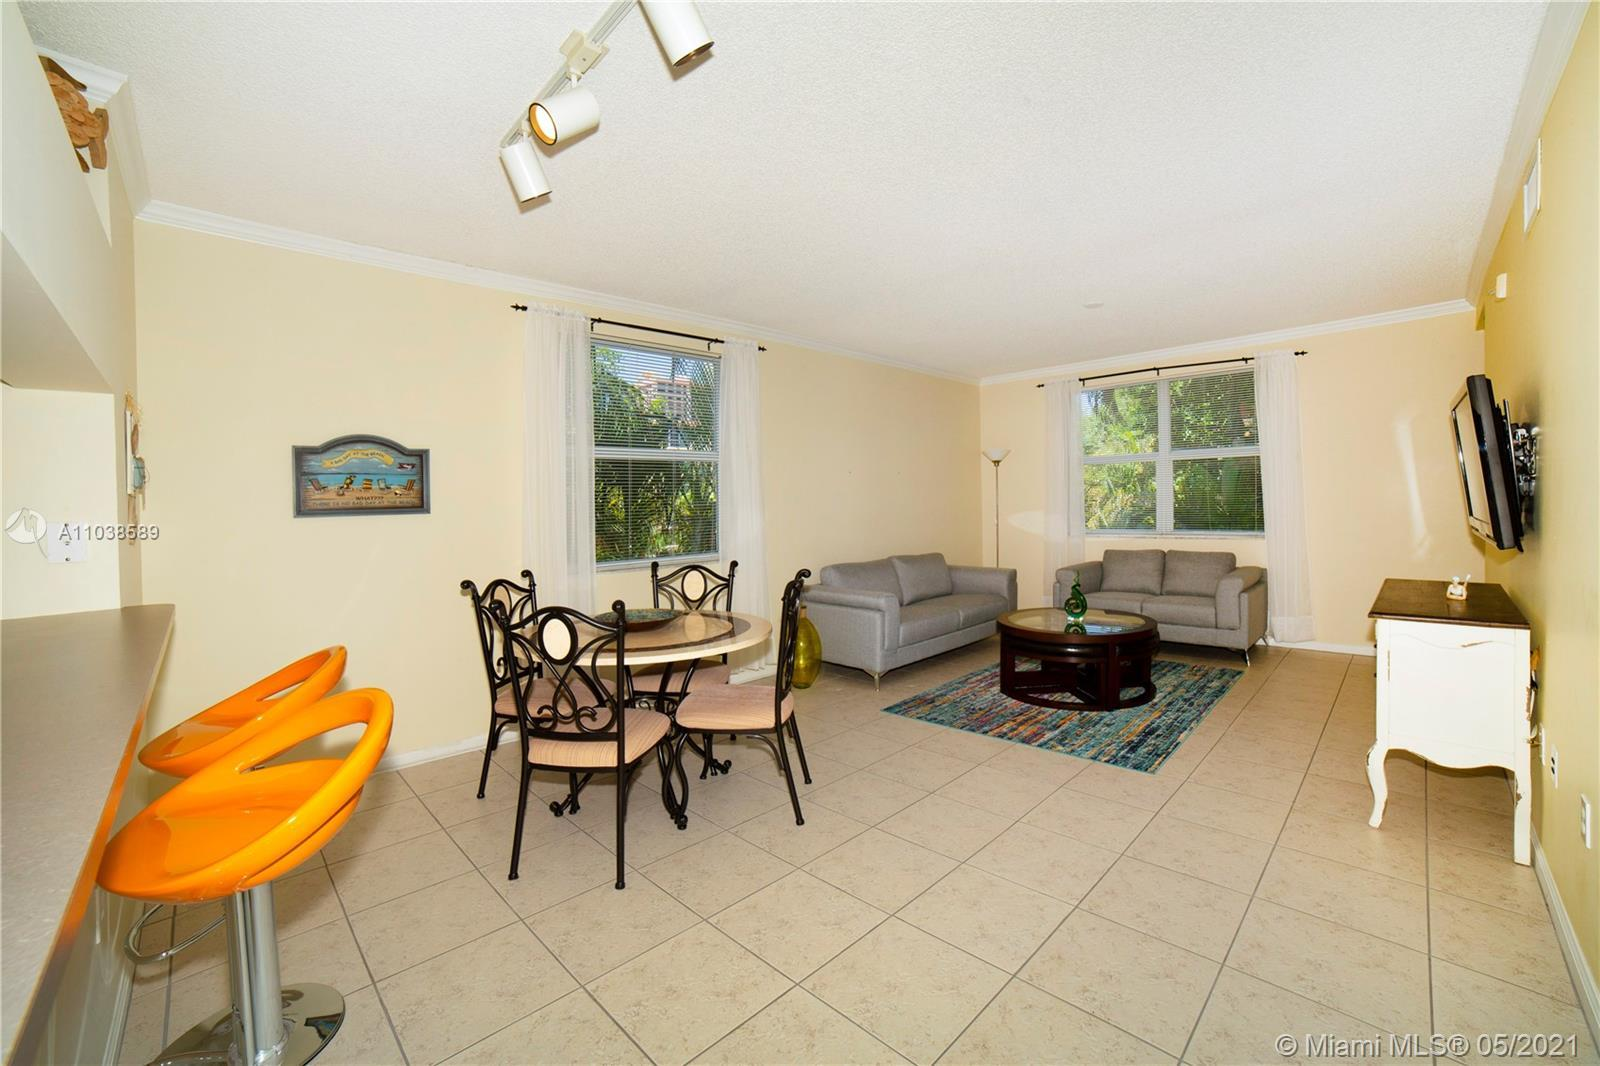 2 bedroom 2 bath corner unit in the heart of Sunny Isles, tile floors in the living dining room and